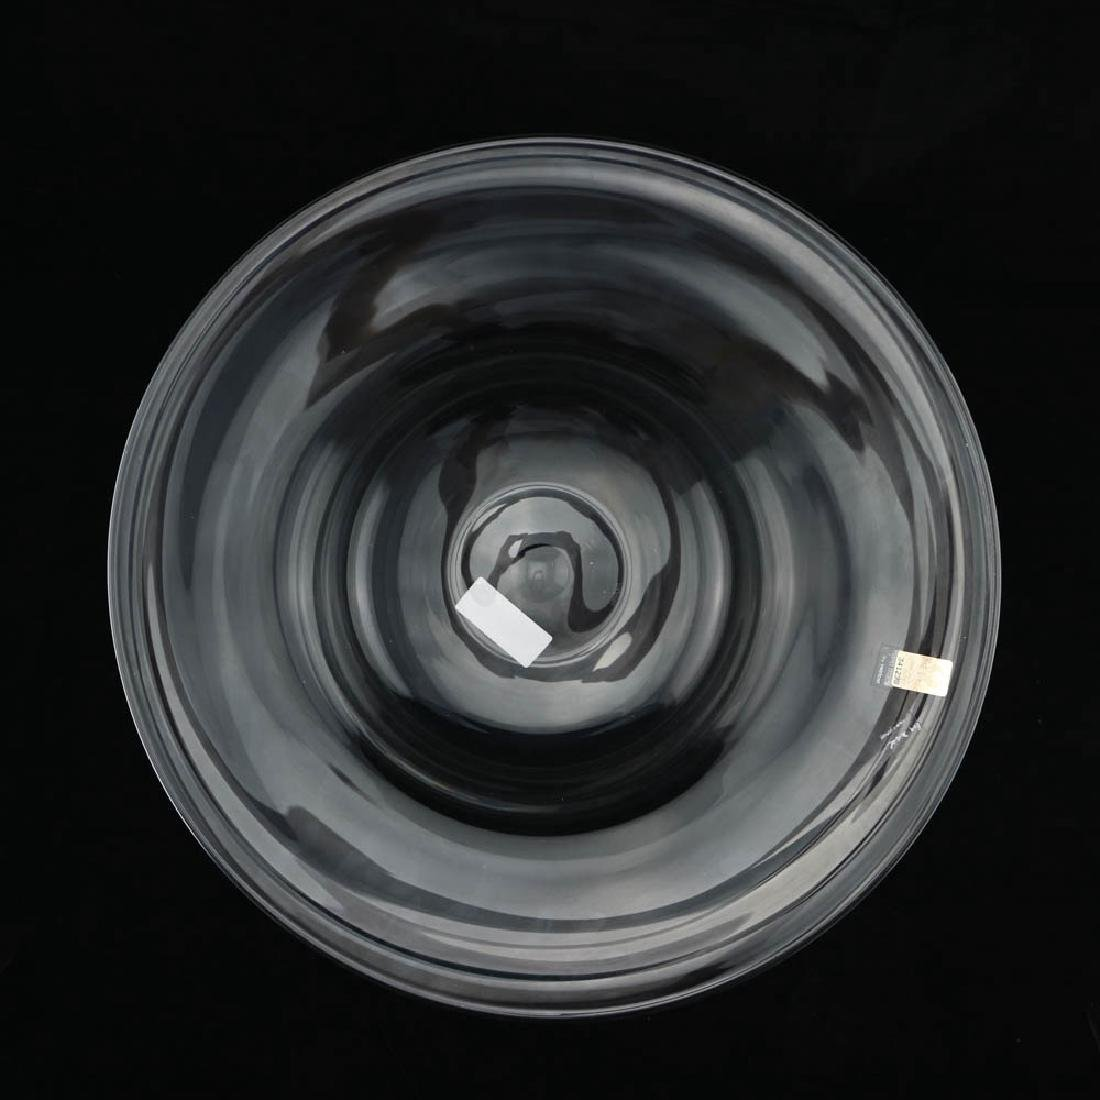 3 Zeisel Mglass Stacking Bowls - 4